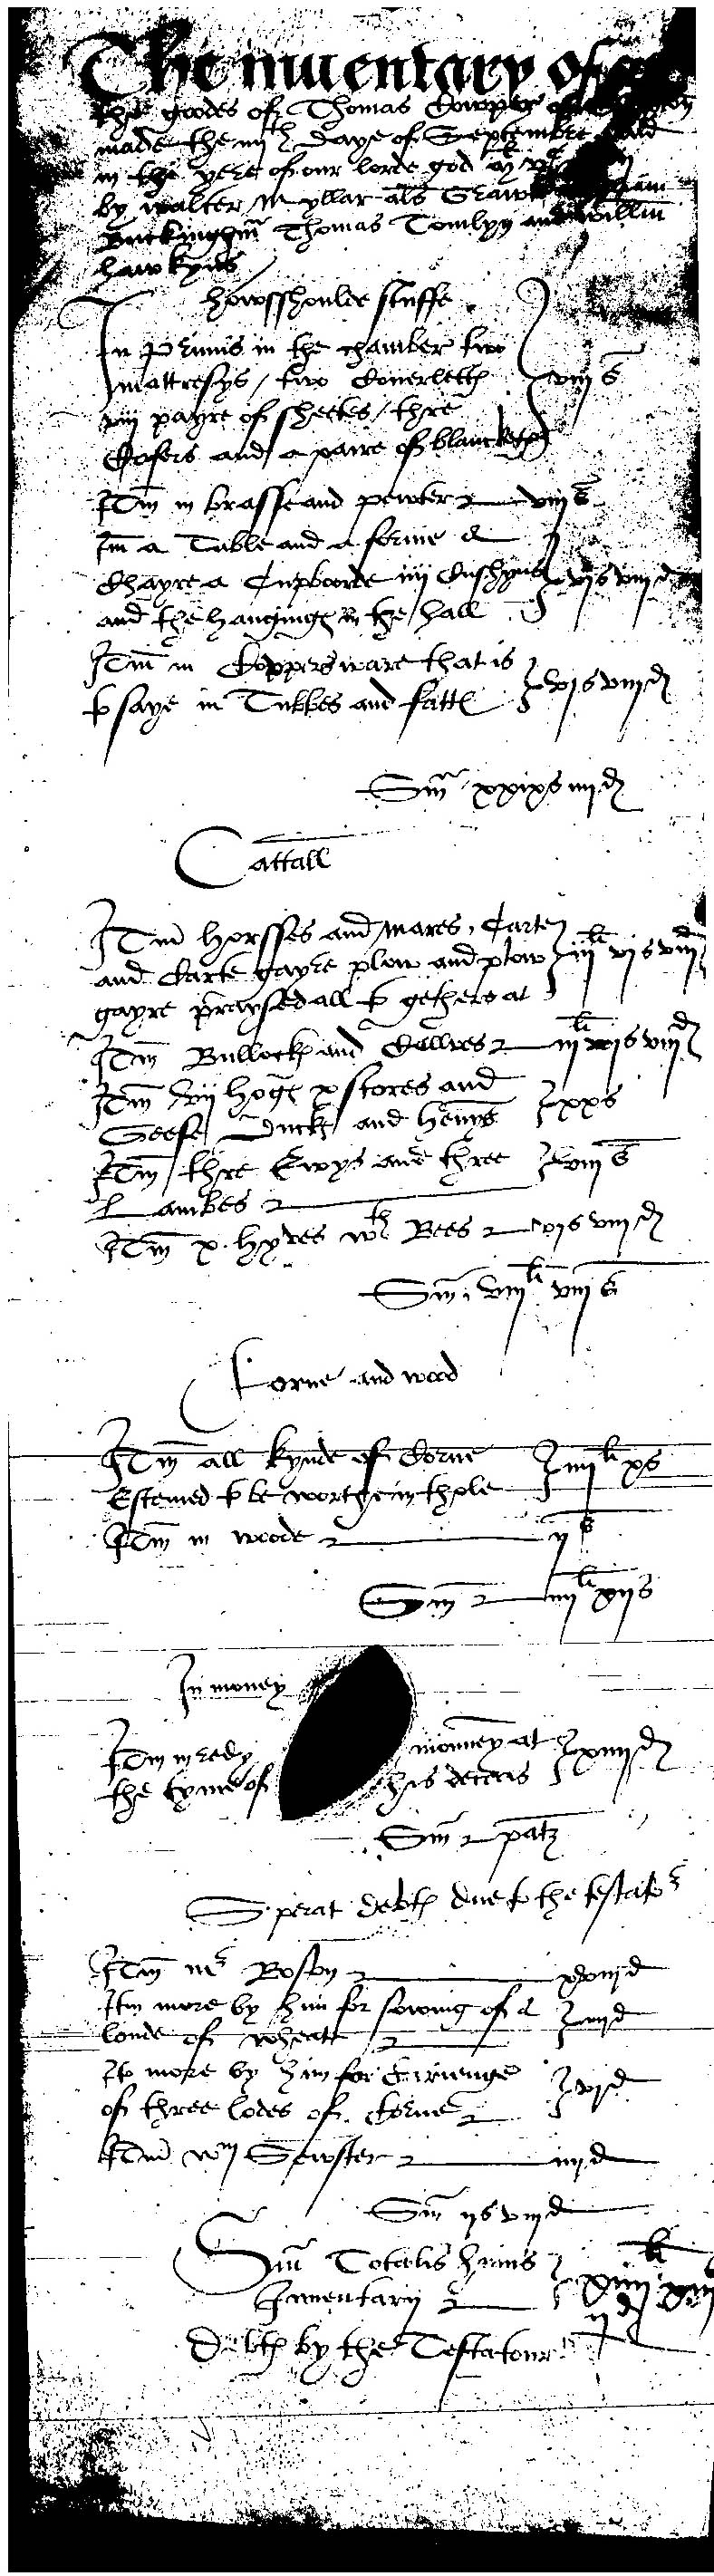 Inventory of Thomas Cowper